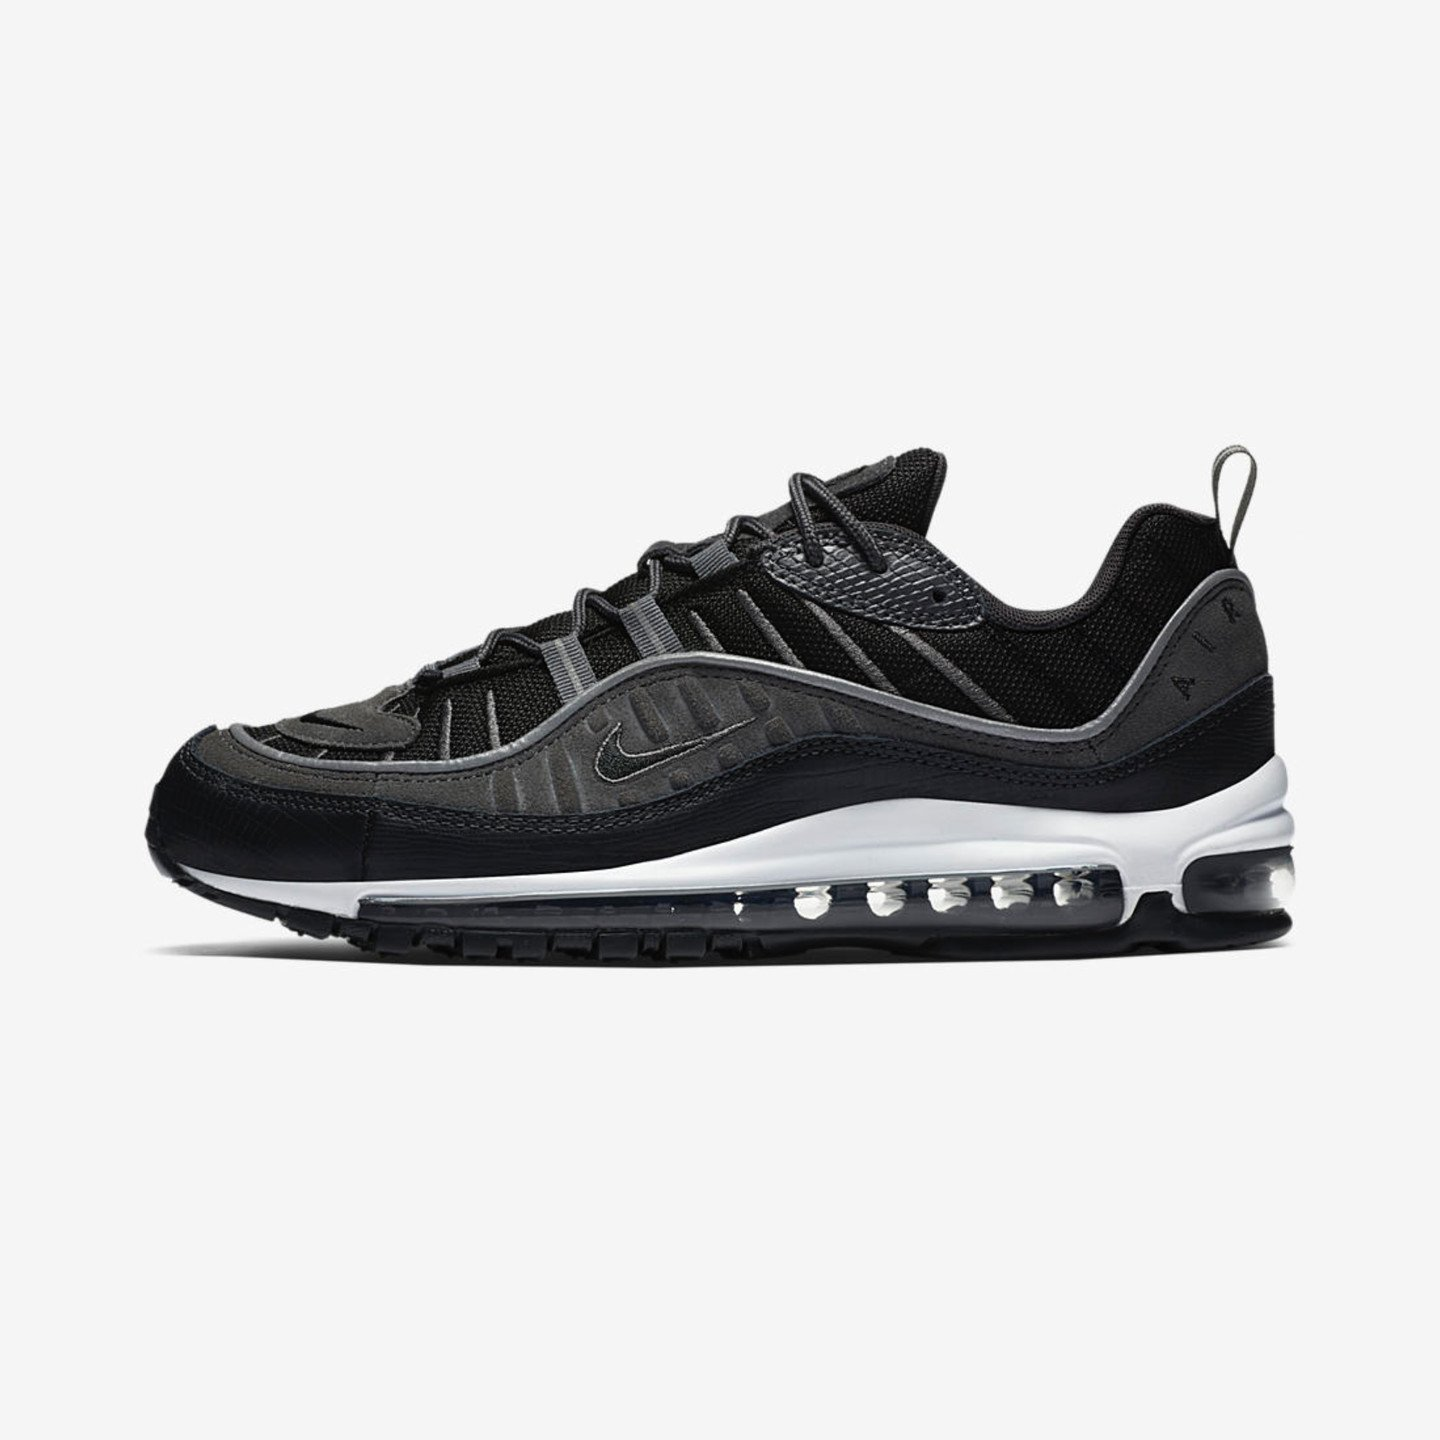 Nike Air Max 98 'Special Edition' Black / Anthracite / Dark Grey / White AO9380-001